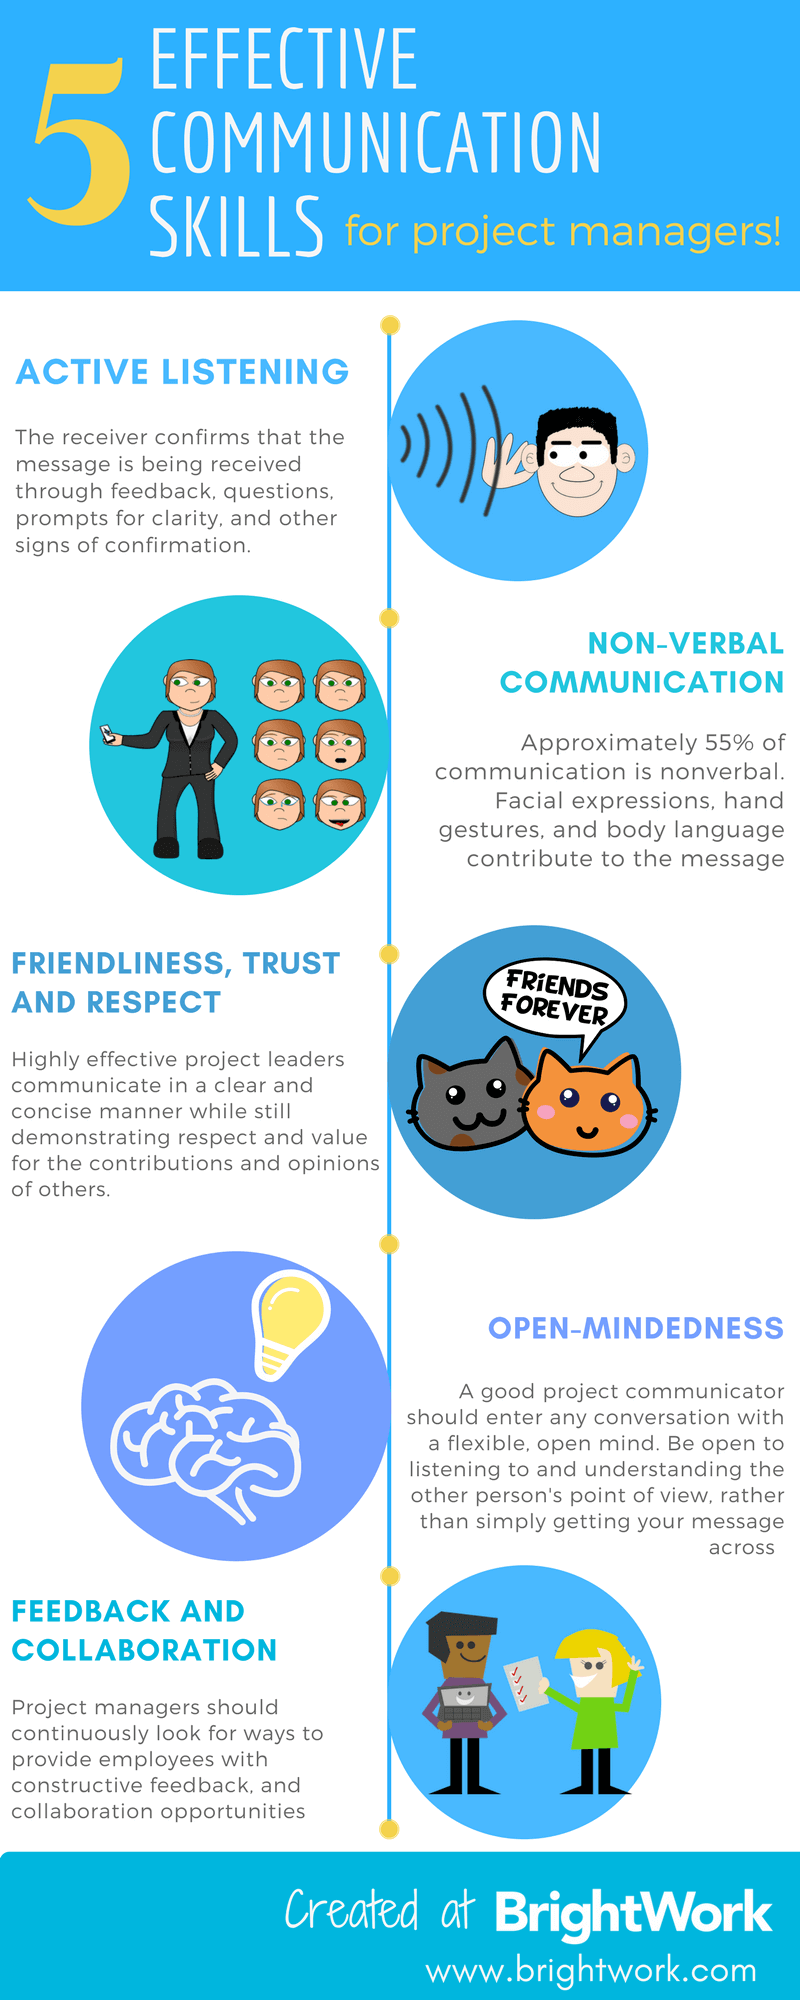 Top 5 Effective Communication Skills For Project Managers Infographic Sharepoint Effective Communication Skills Communication Skills Effective Communication